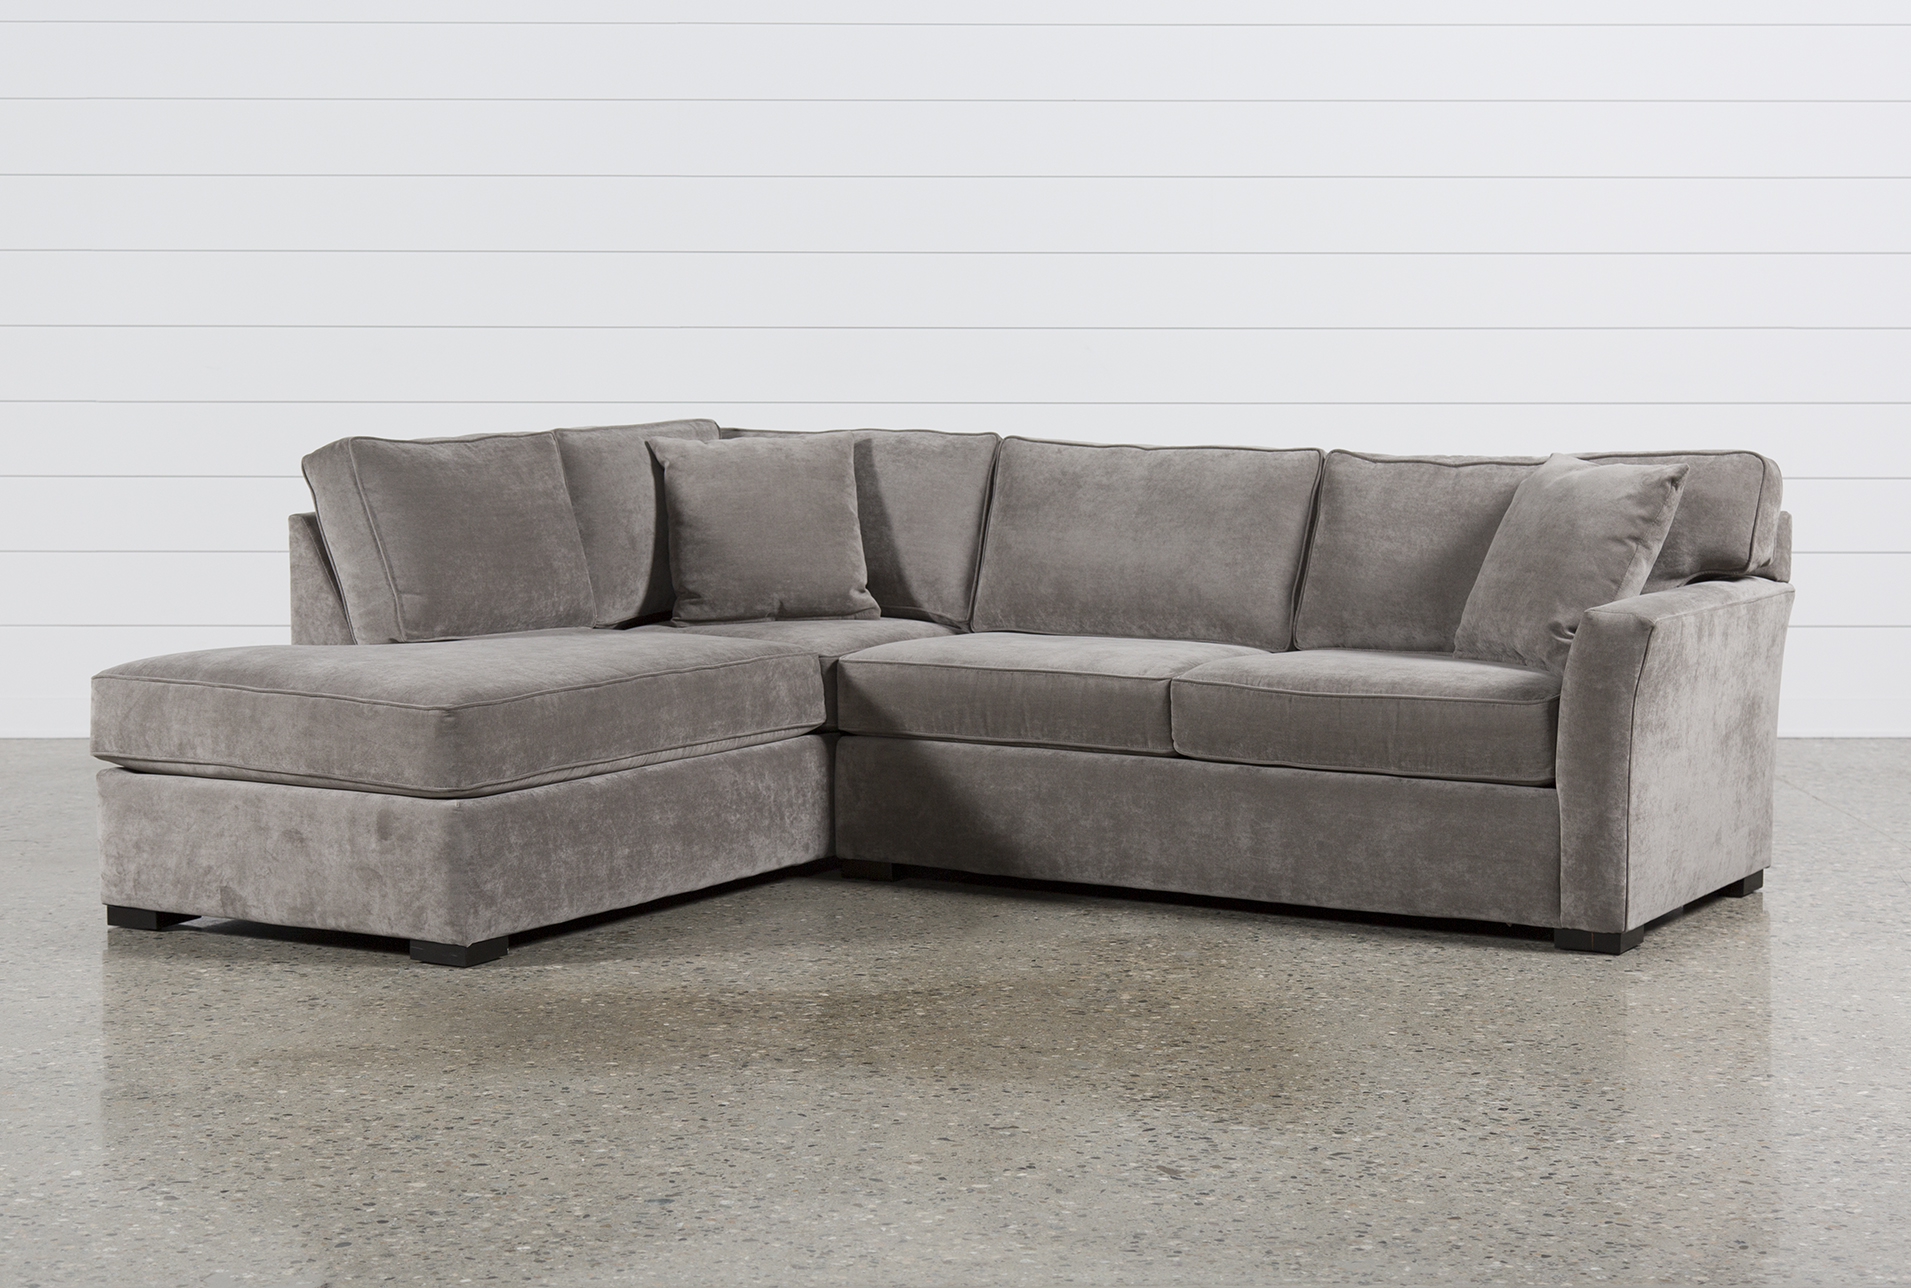 Aspen 2 Piece Sleeper Sectional W/Laf Chaise | Living Spaces